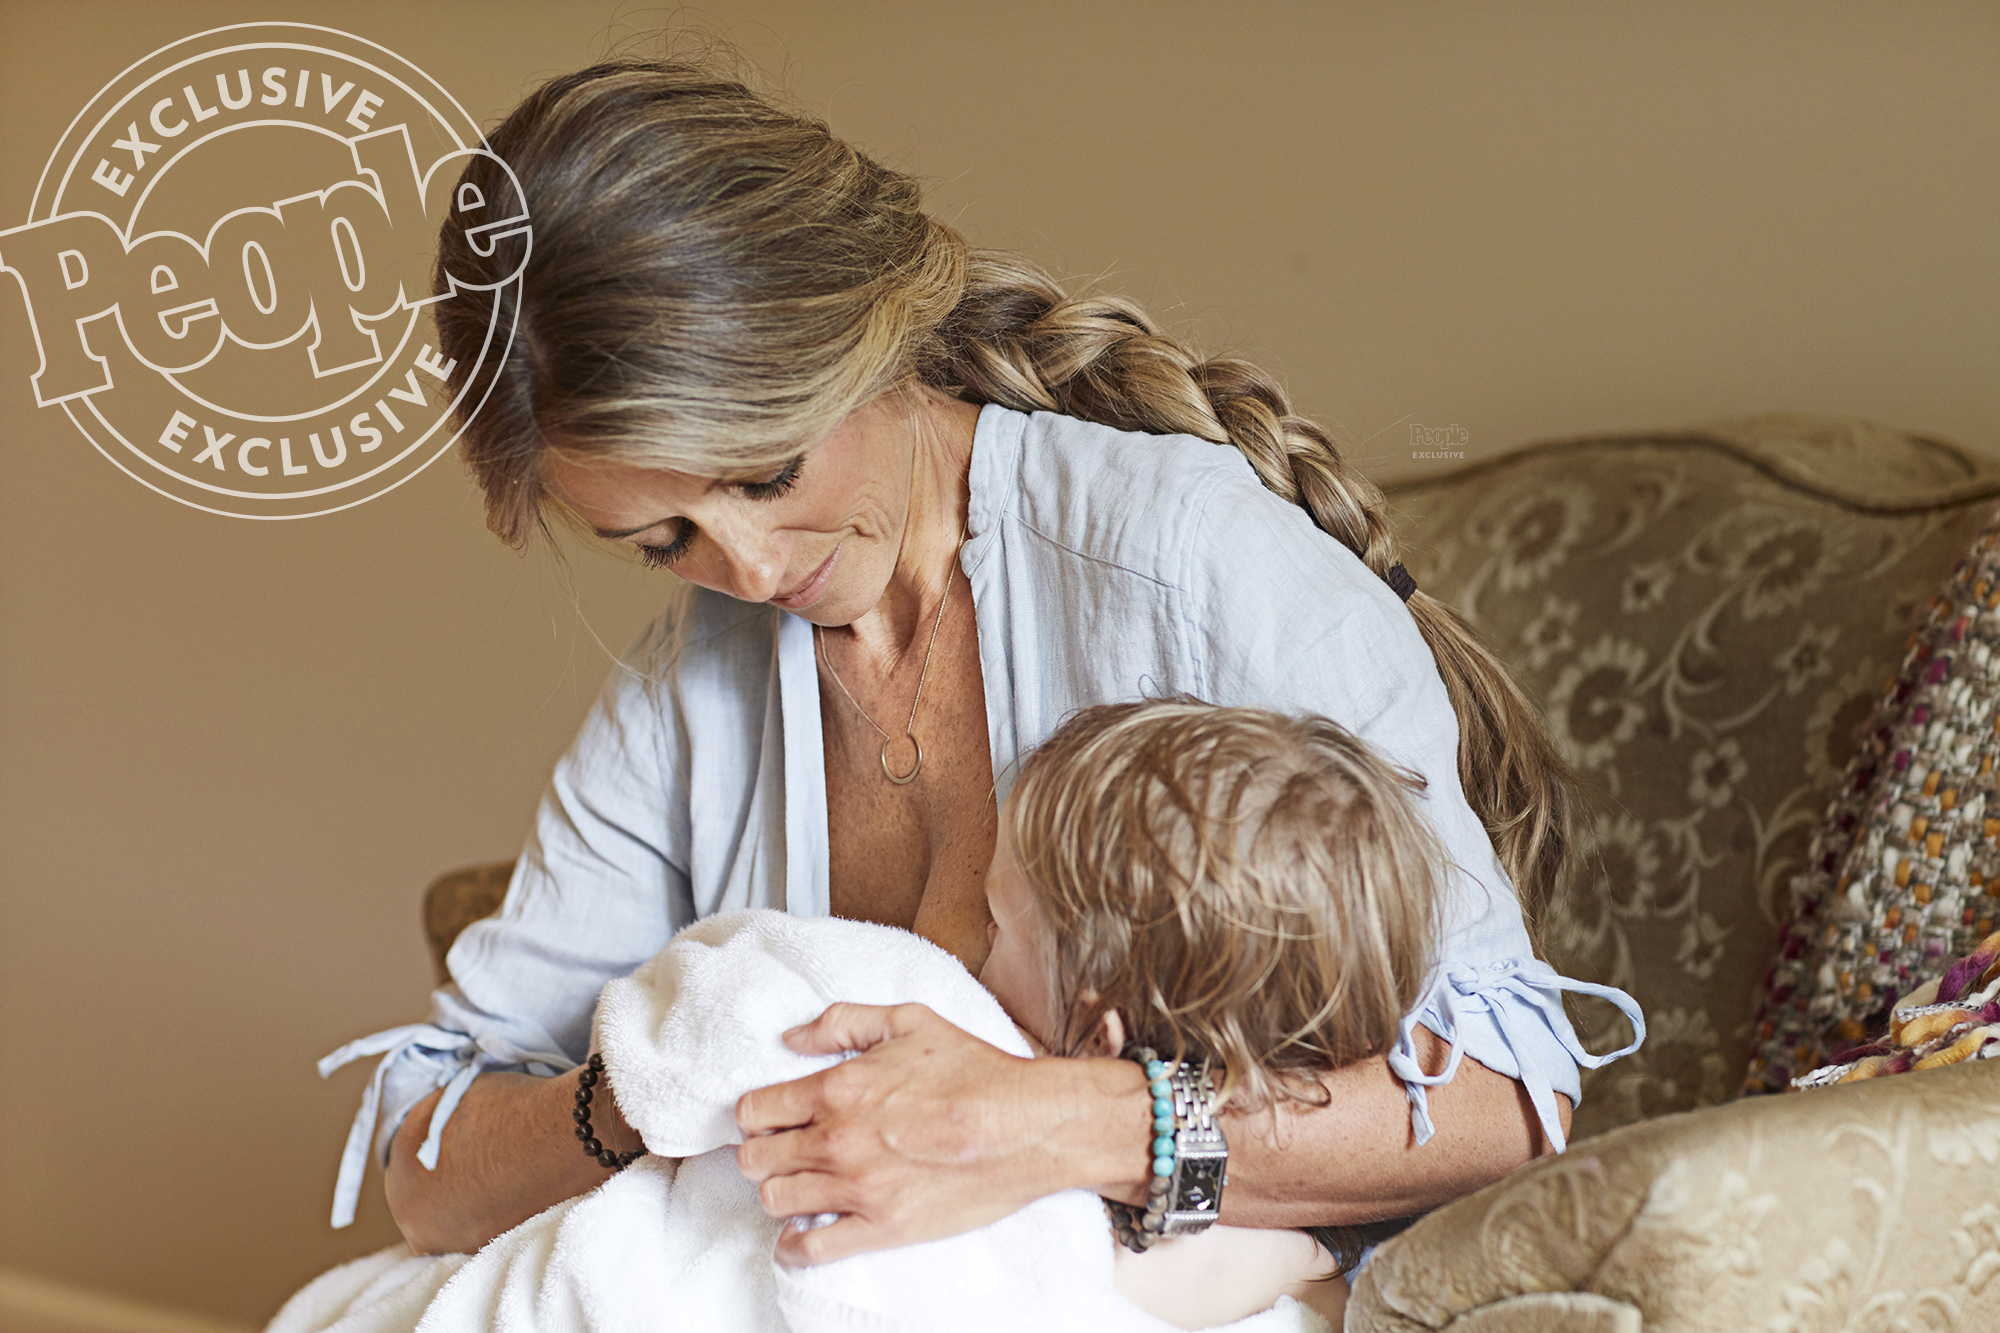 Nicole Curtis Still Breastfeeds Her Almost 3-Year-Old Son But Says Less Frequently These Days